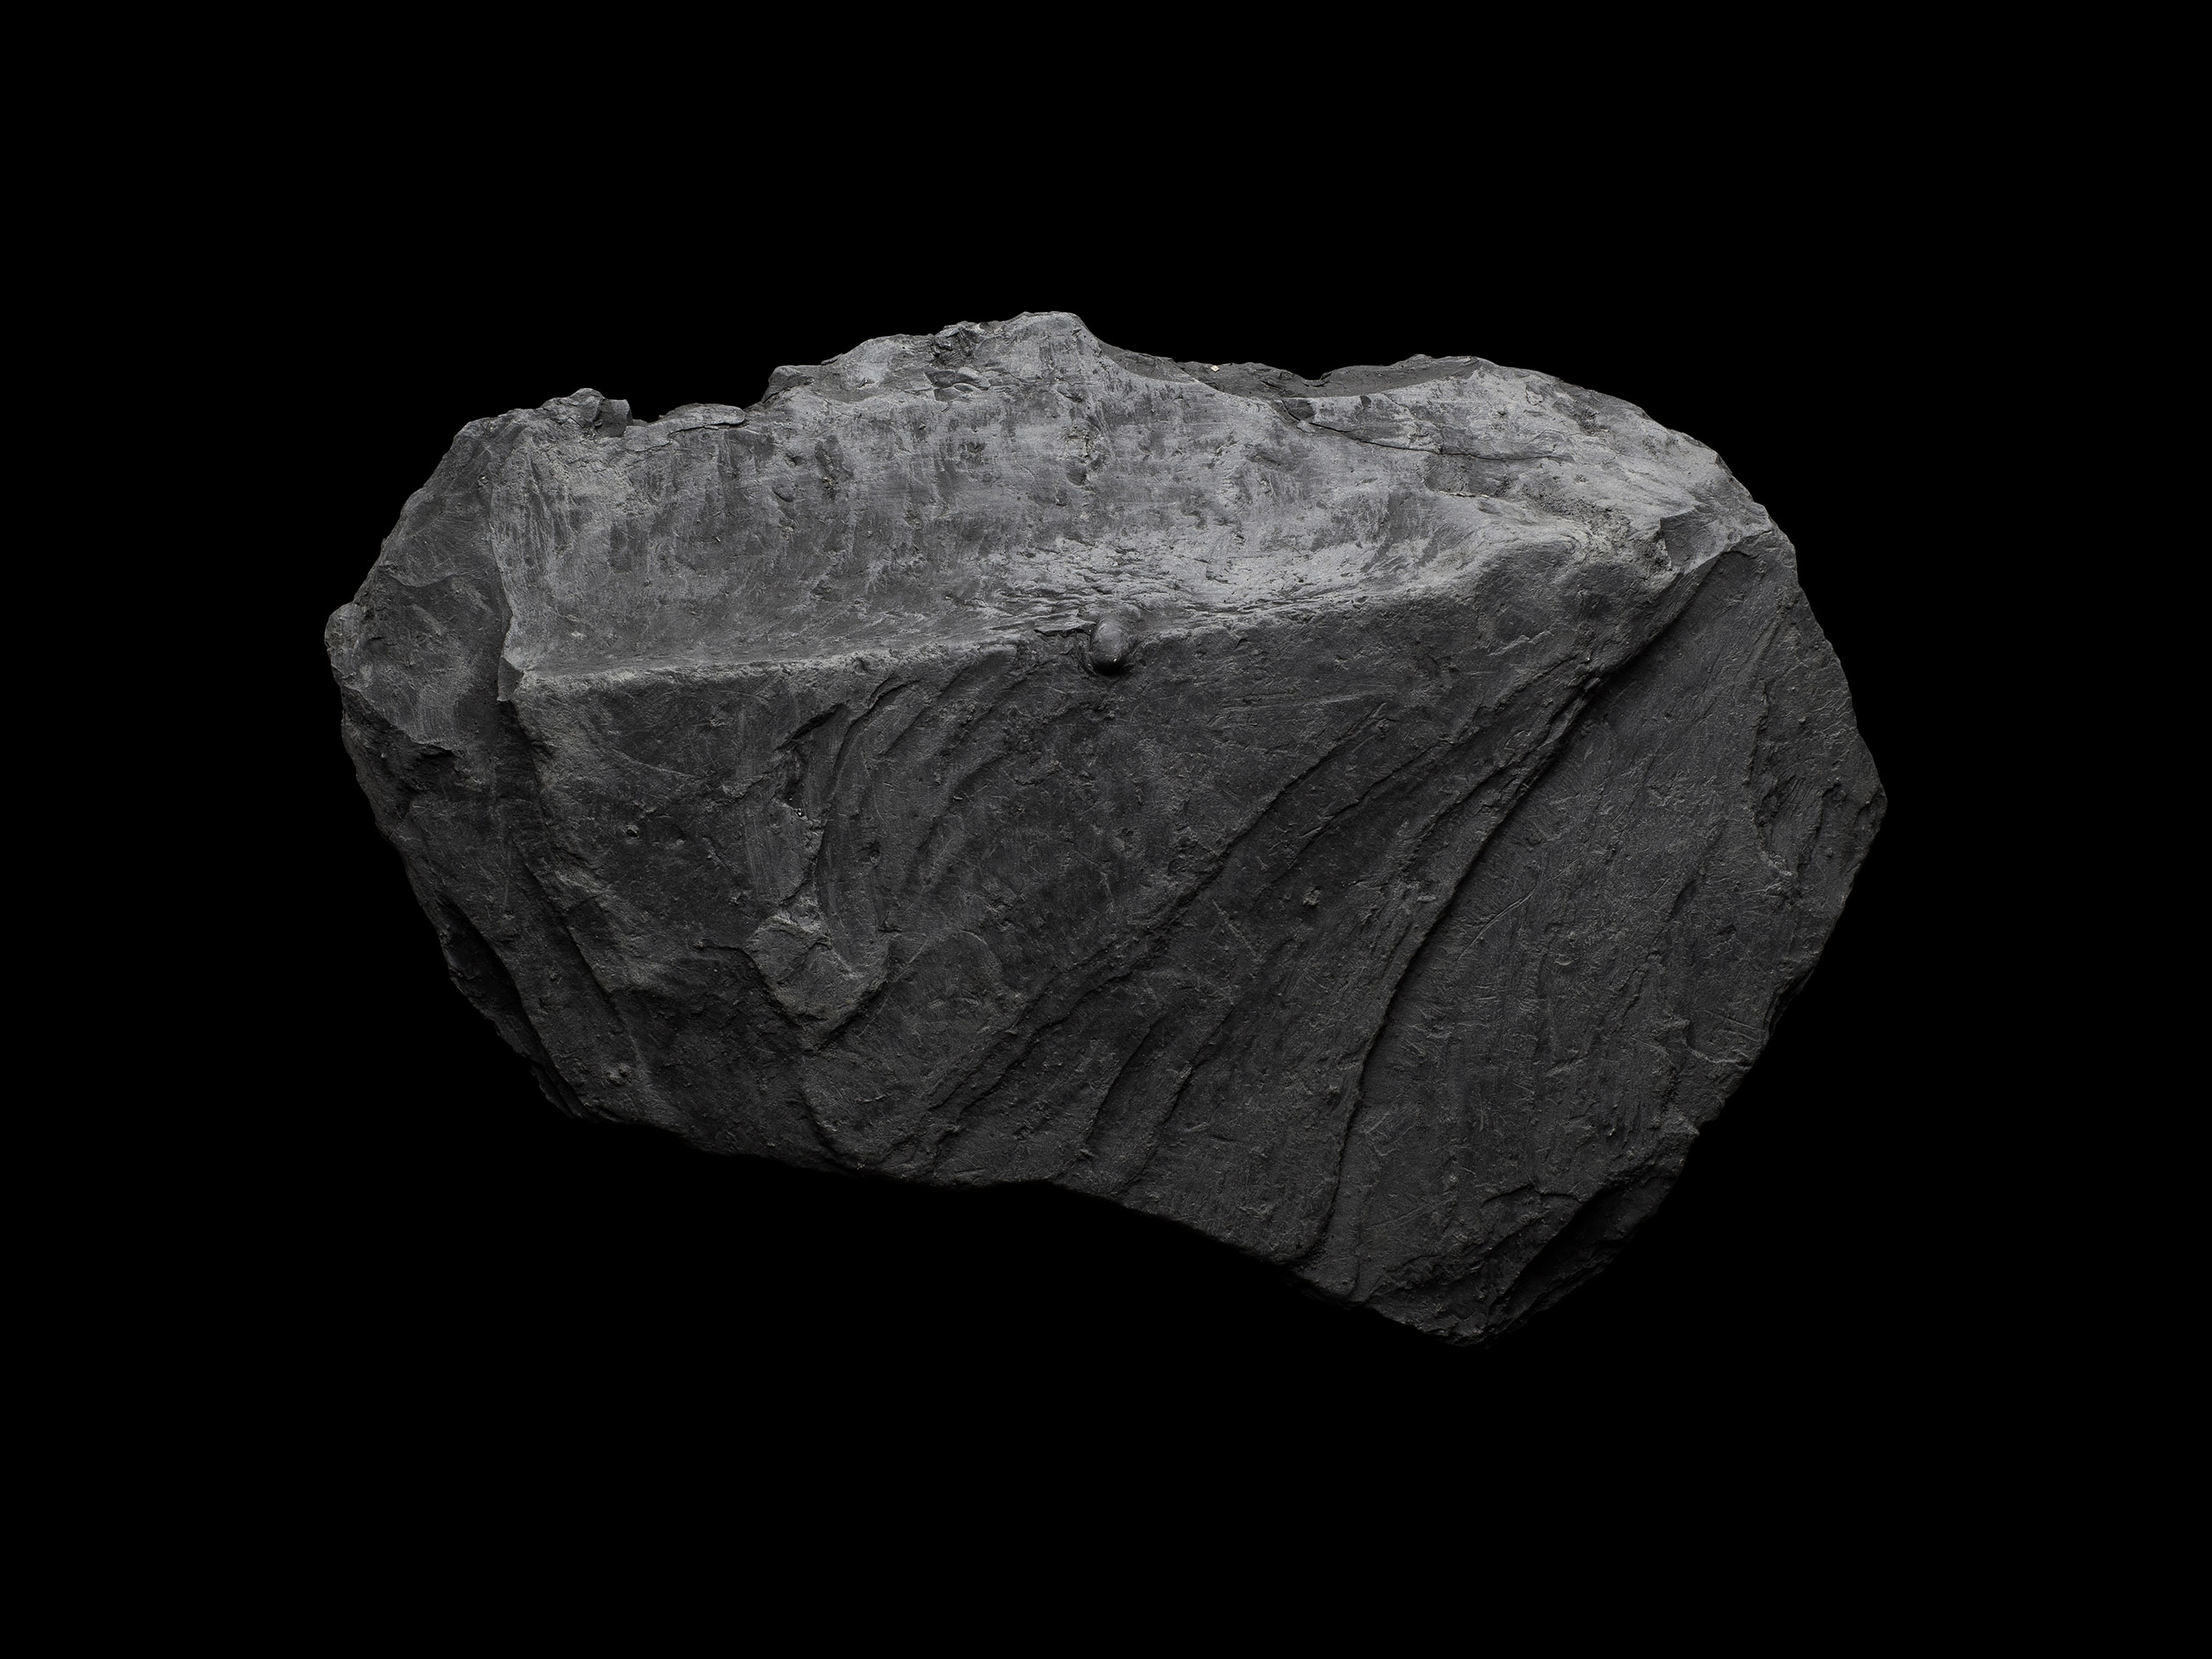 For the Rest of Us. A project by Hank Beyer and Alex Sizemore. Coal.